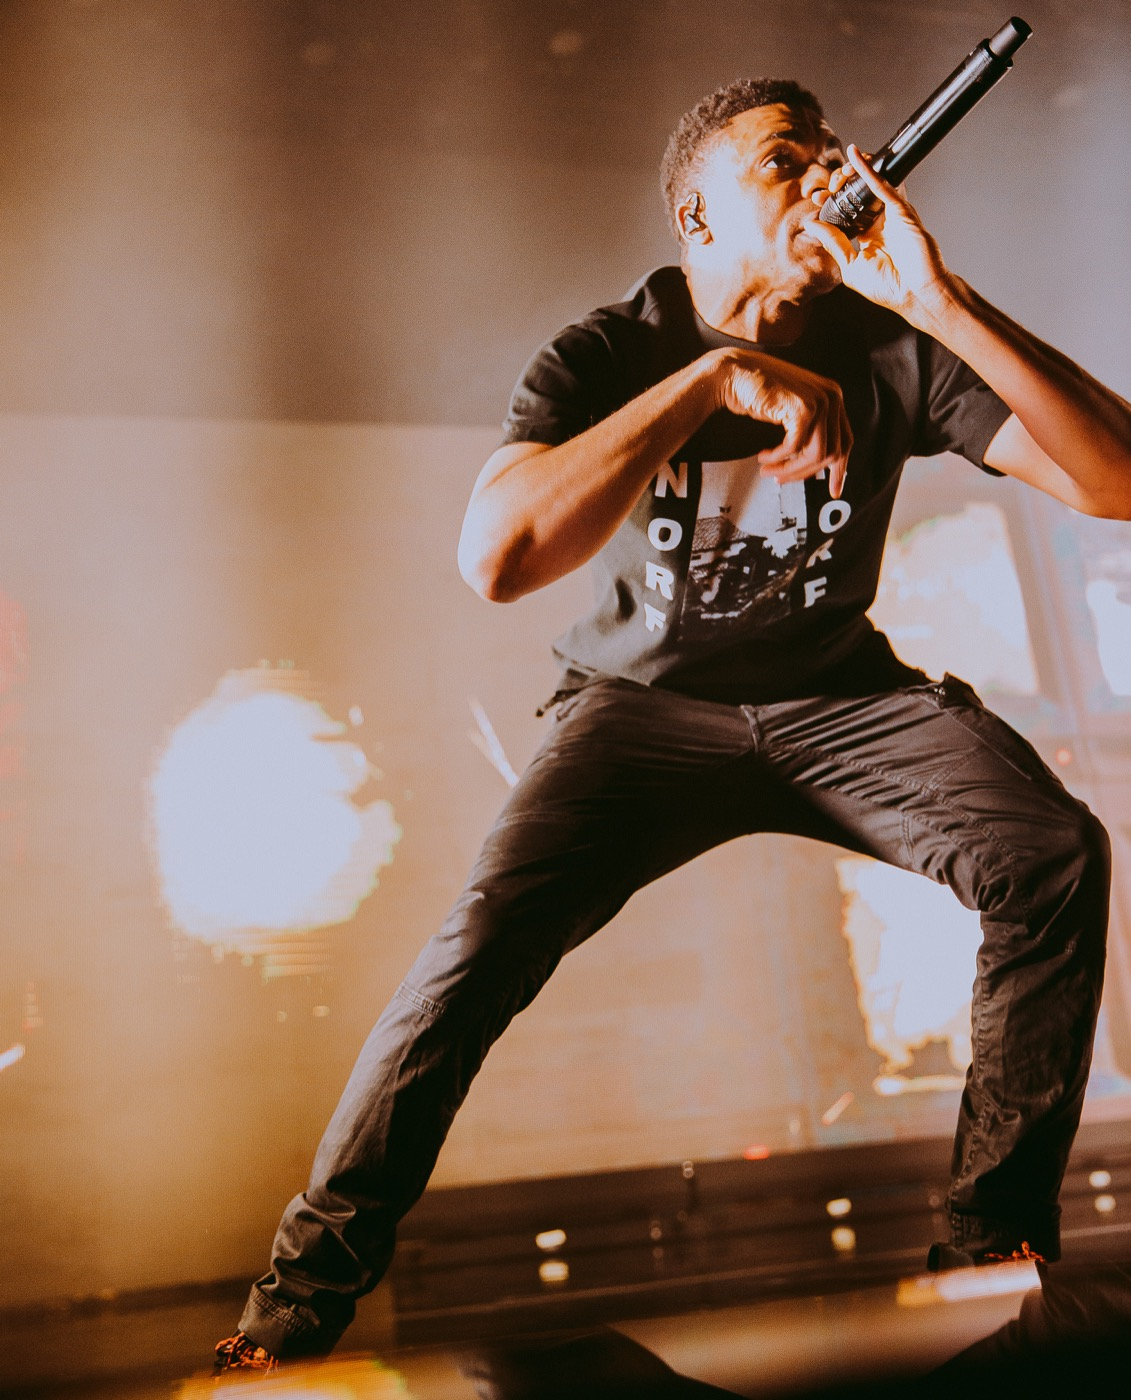 Long Beach Rapper Vince Staples Breathes New Life Into An